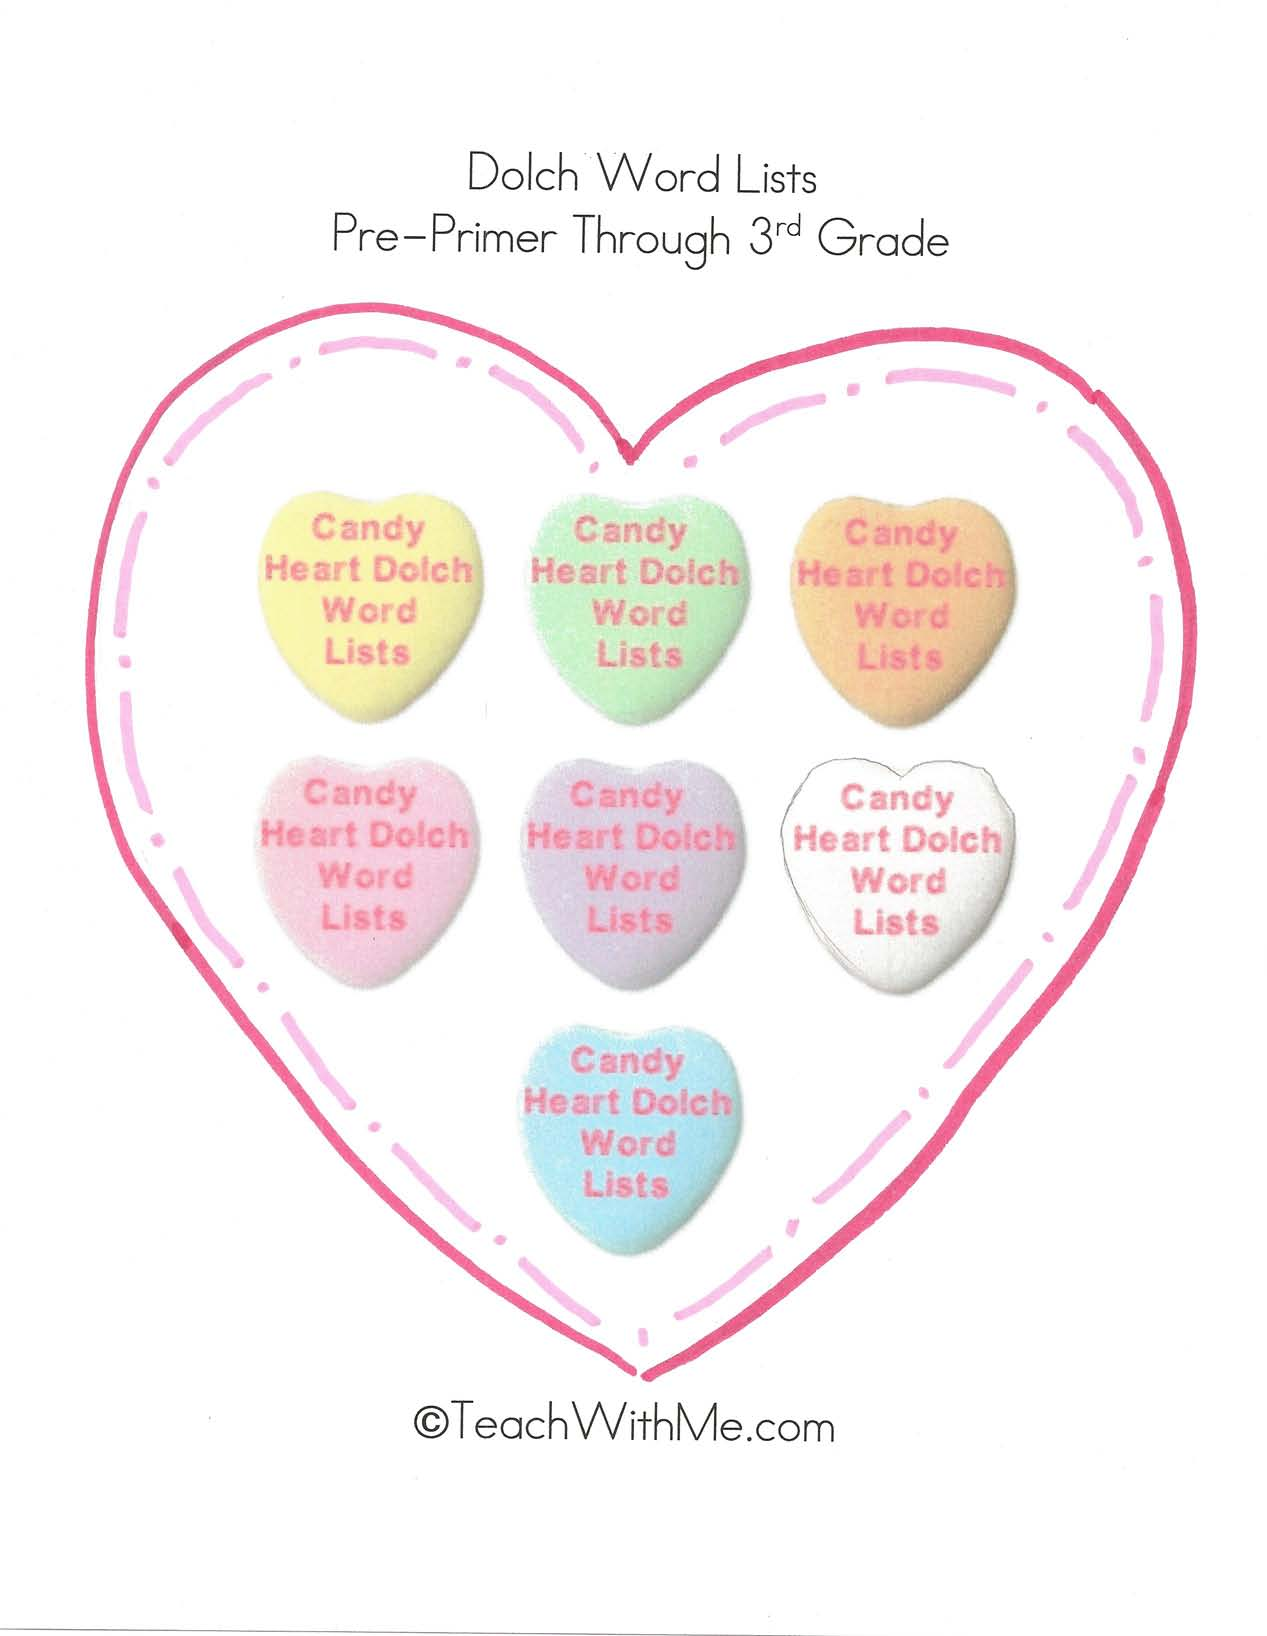 candy heart ideas, candy heart activities, candy heart centers, 100 day activities, candy heart games, meassurement activities with candy hearts, graphing candy hearts, 100 day cards,  heart math, candy heart graphs, candy heart pattern mat, candy heart booklet, candy heart cards, candy heart valentines, candy heart certificate,